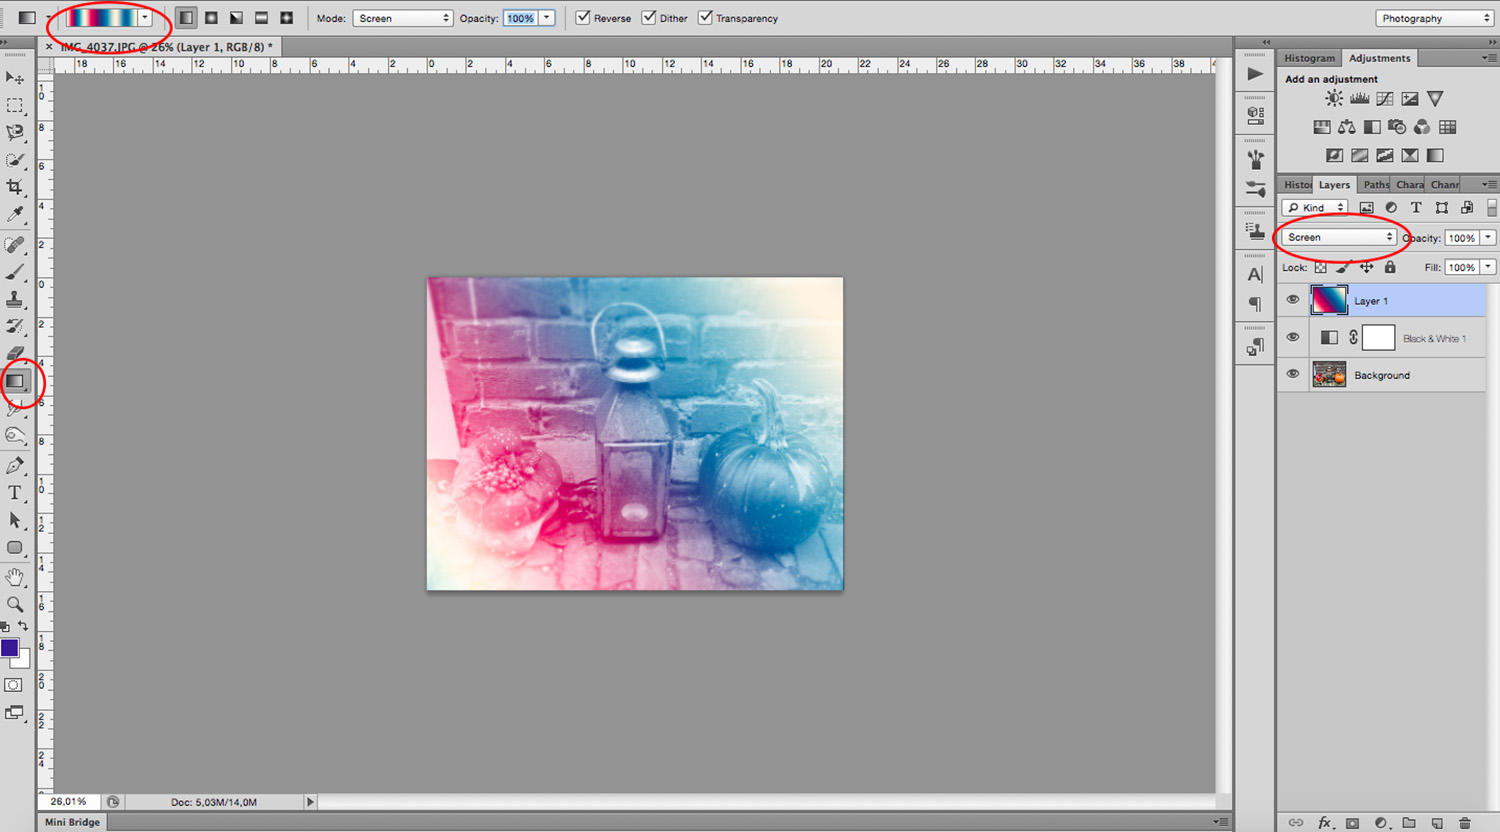 How to Customize and Use the Photoshop Gradient Tool